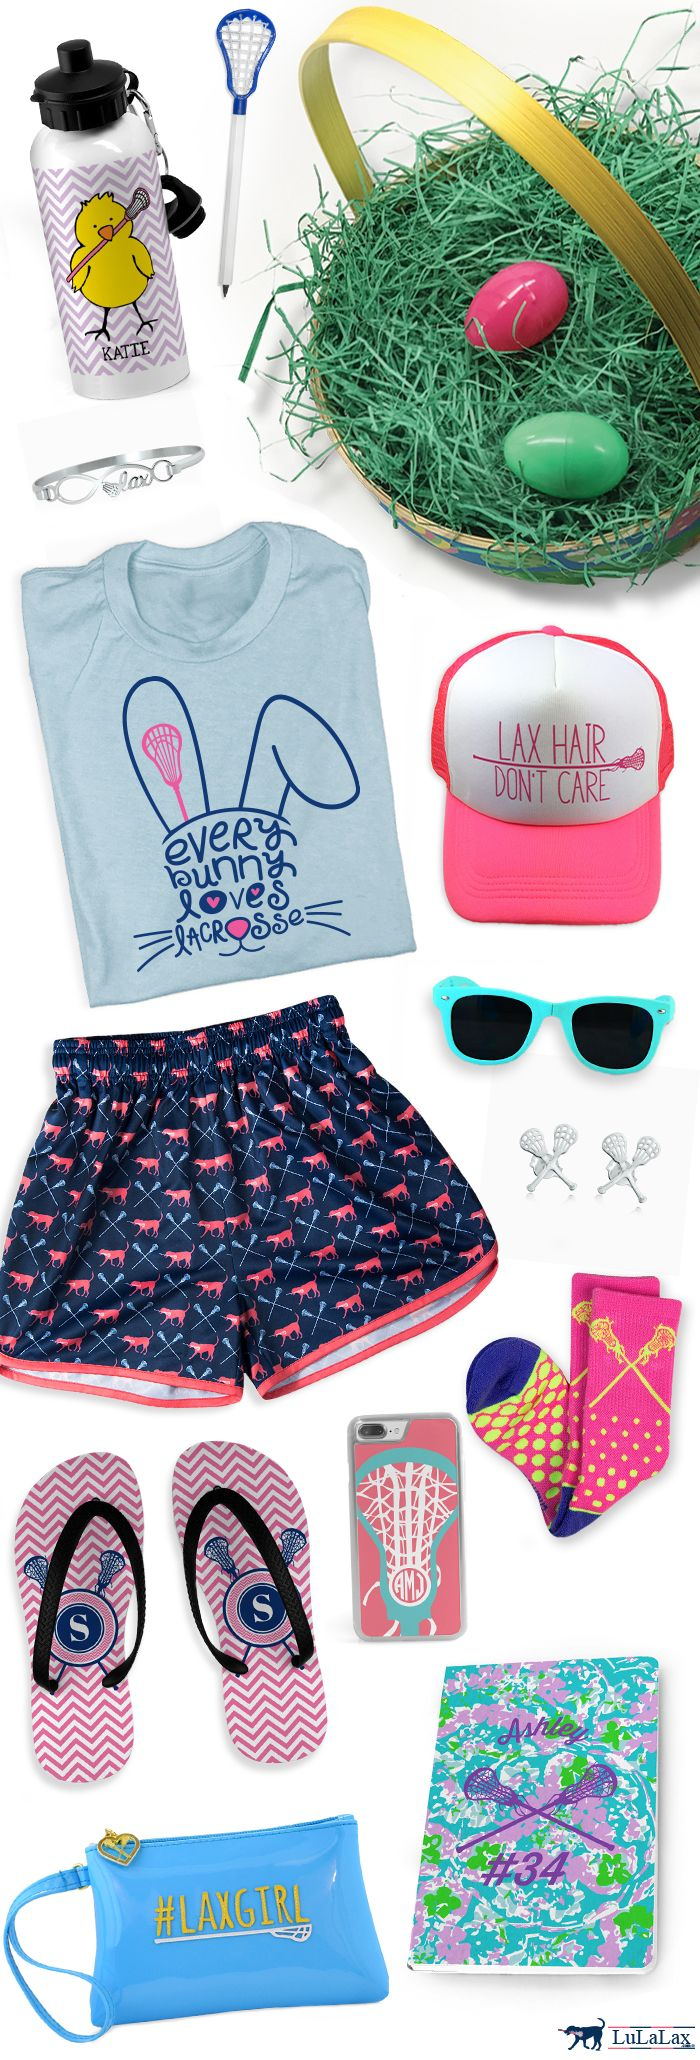 We've got so many fun gift ideas to help you fill up your lax girl's Easter basket! From lacrosse apparel to accessories and more, we've got you covered!